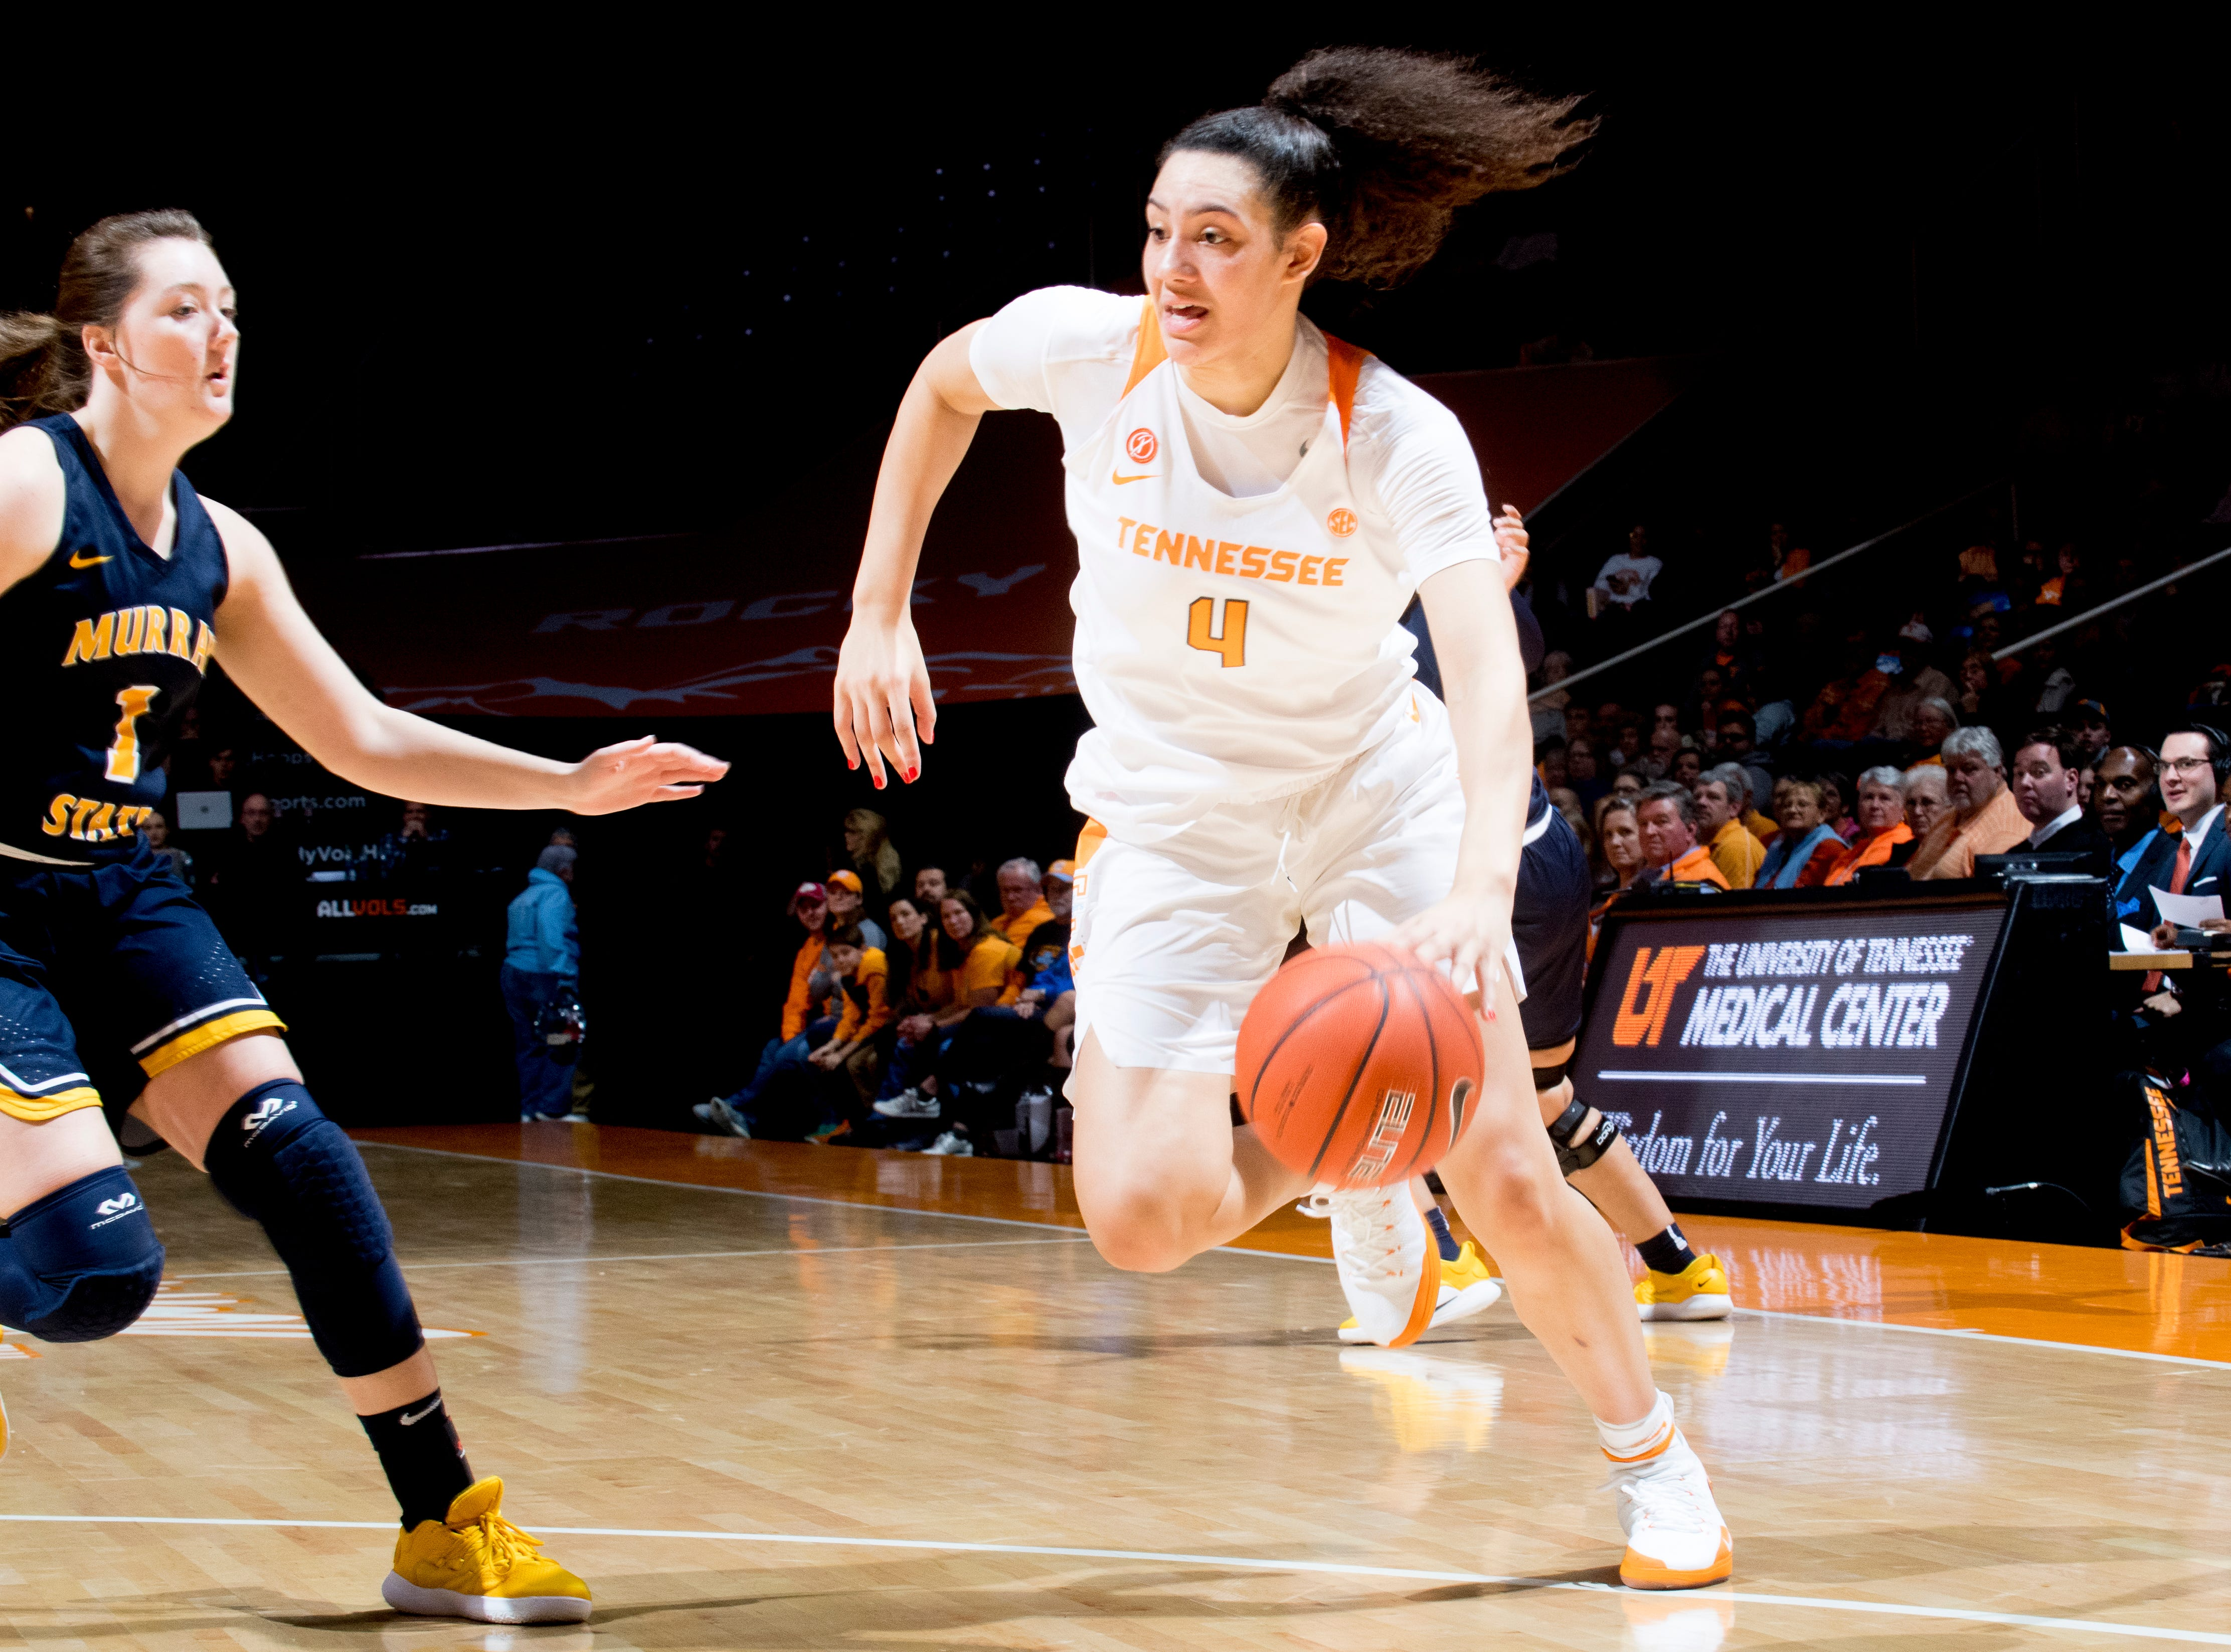 Tennessee forward Mimi Collins (4) dribbles the ball as Murray State guard Raegan Blackburn (1) defends during a game between the Tennessee Lady Vols and Murray State at Thompson-Boling Arena in Knoxville, Tennessee on Friday, December 28, 2018.